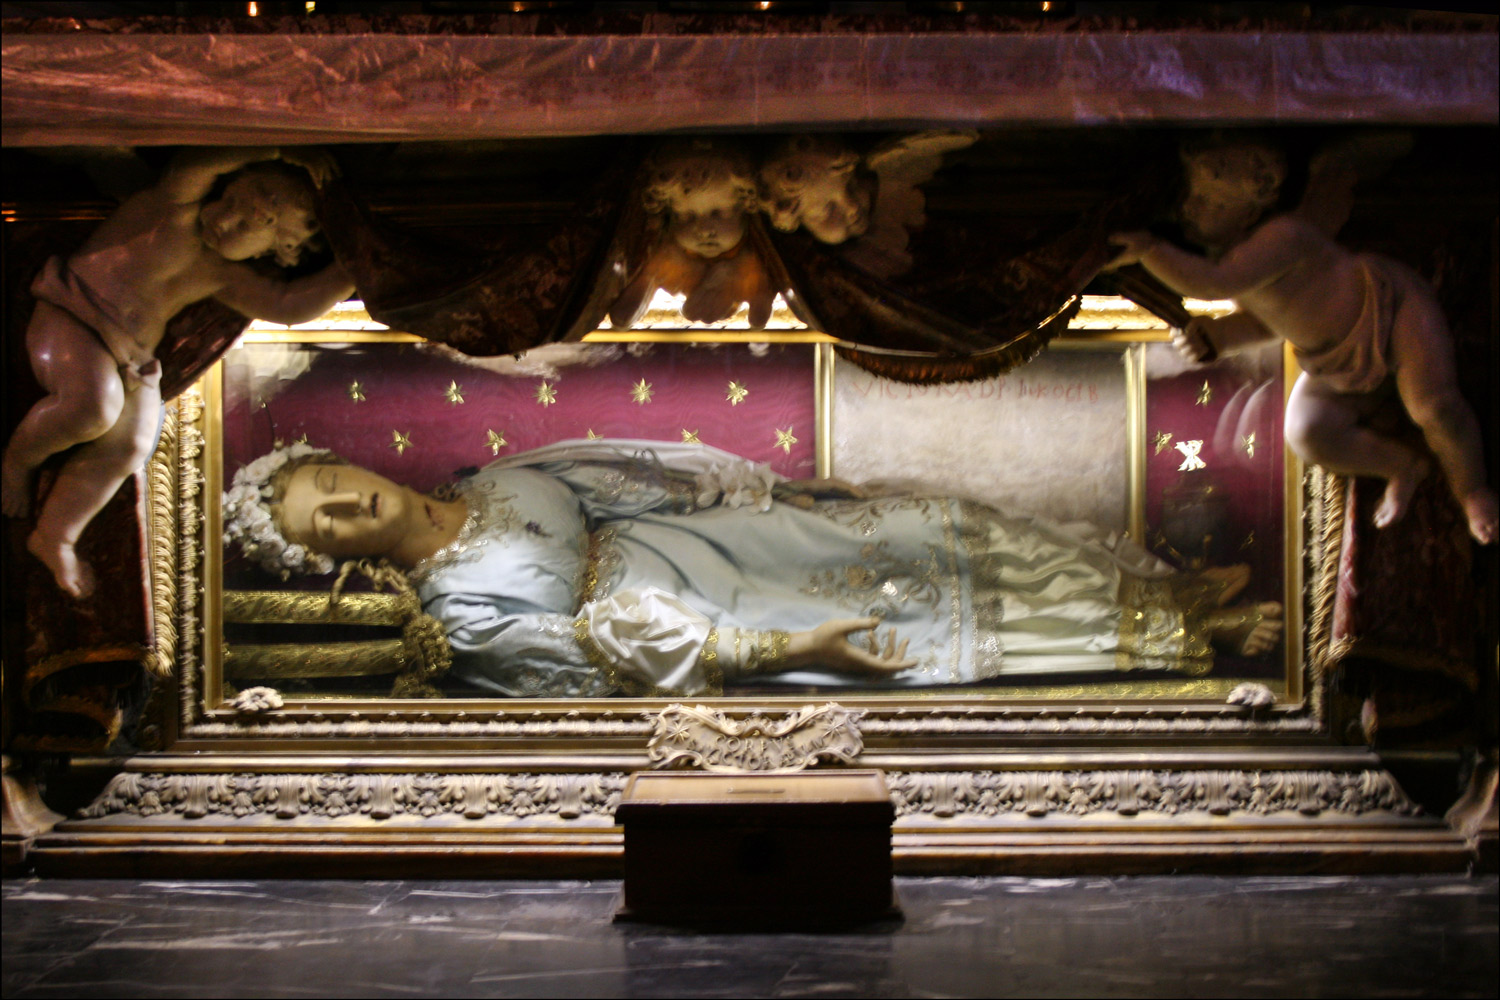 Saint Vittoria, Virgin and Martyr